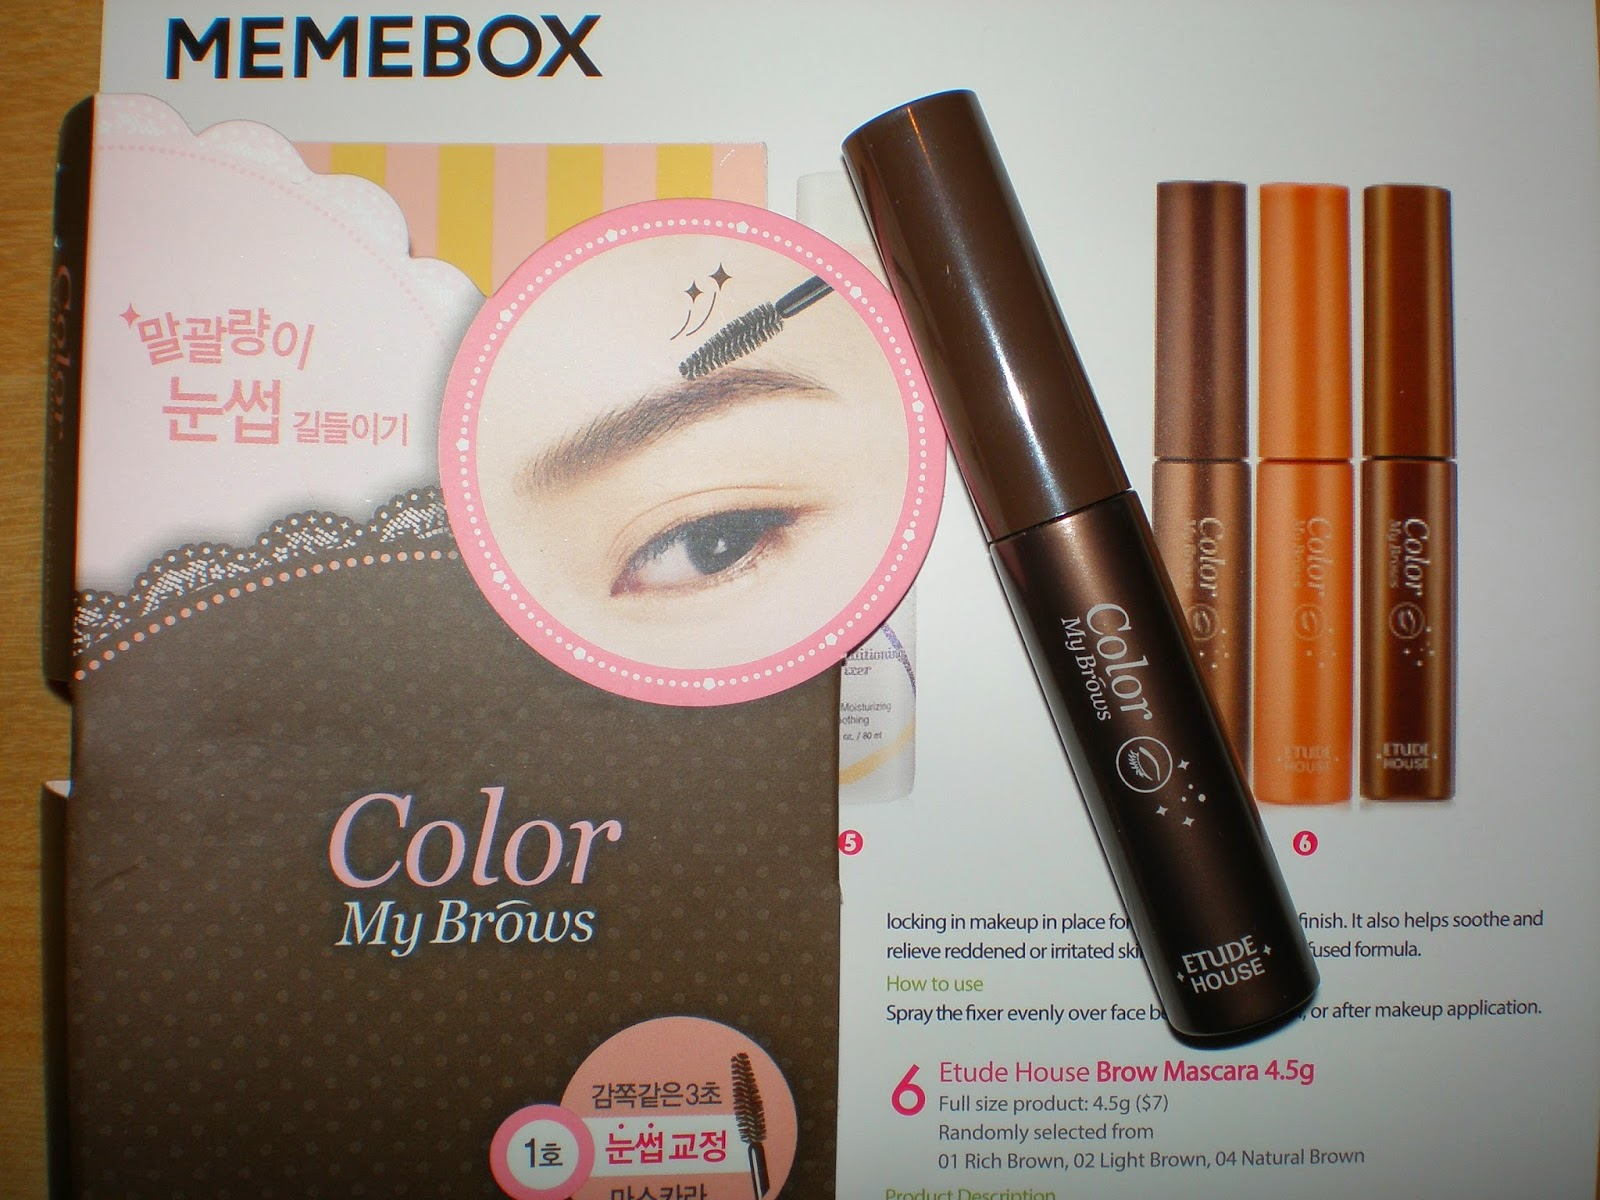 Etude House Brow Mascara